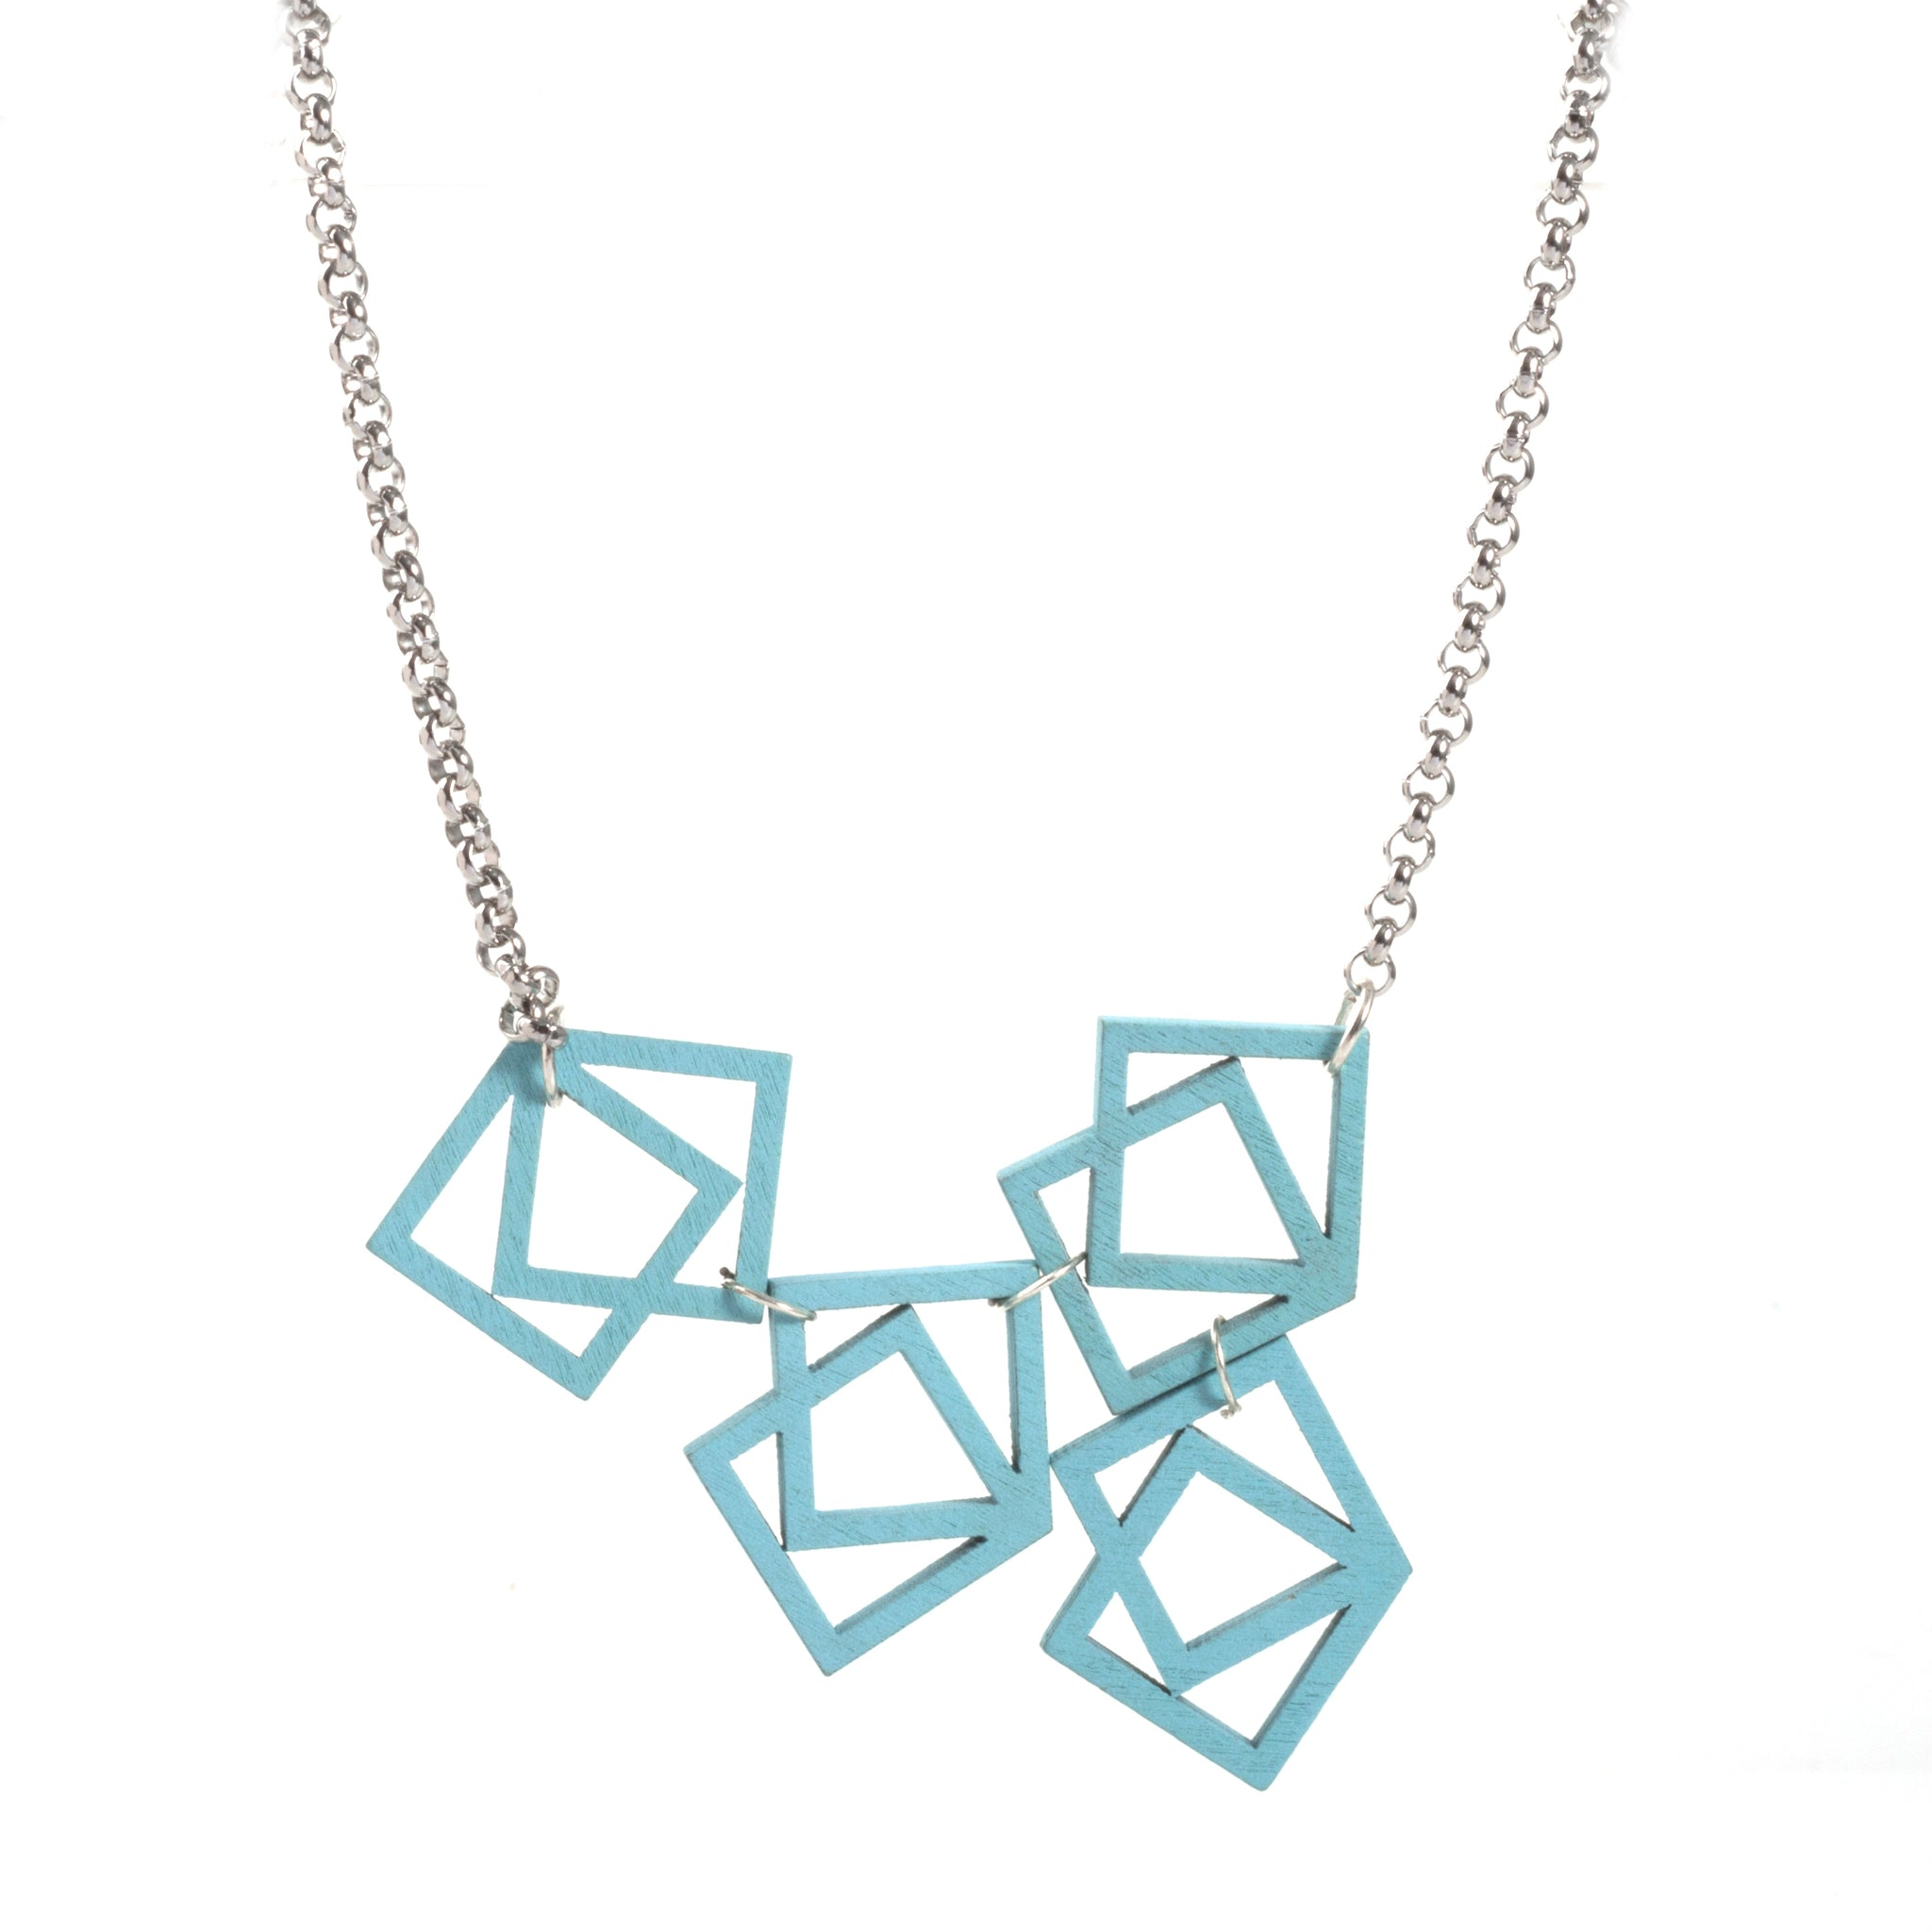 Turquoise squares necklace